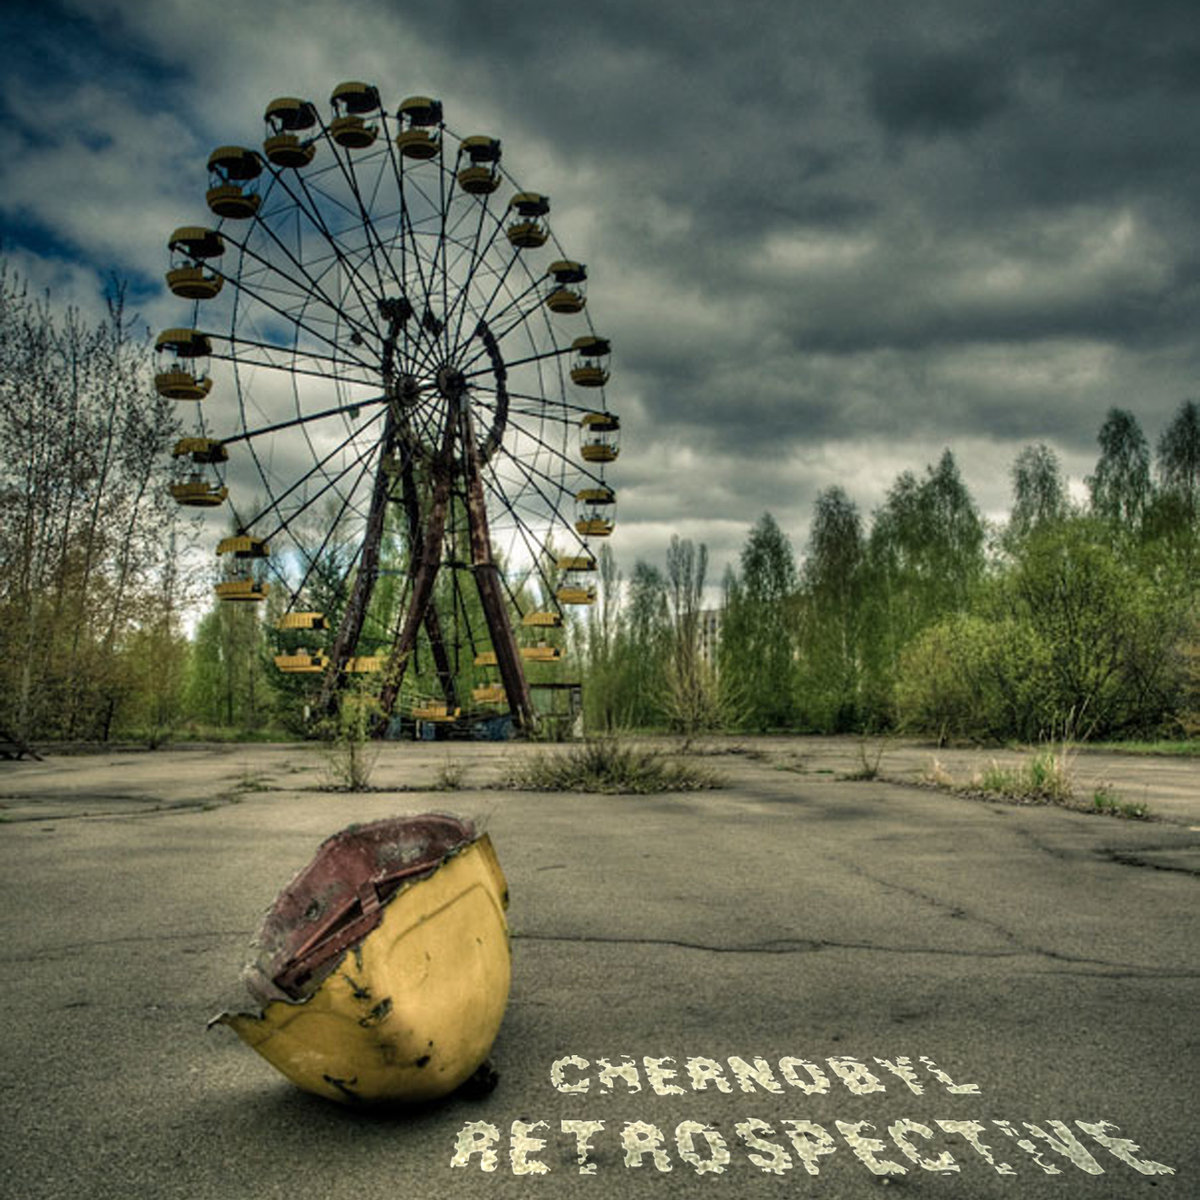 New Flora & Fauna - Silence Of Doors @ 'Various Artists - Chernobyl Retrospective' album (electronic, ambient)